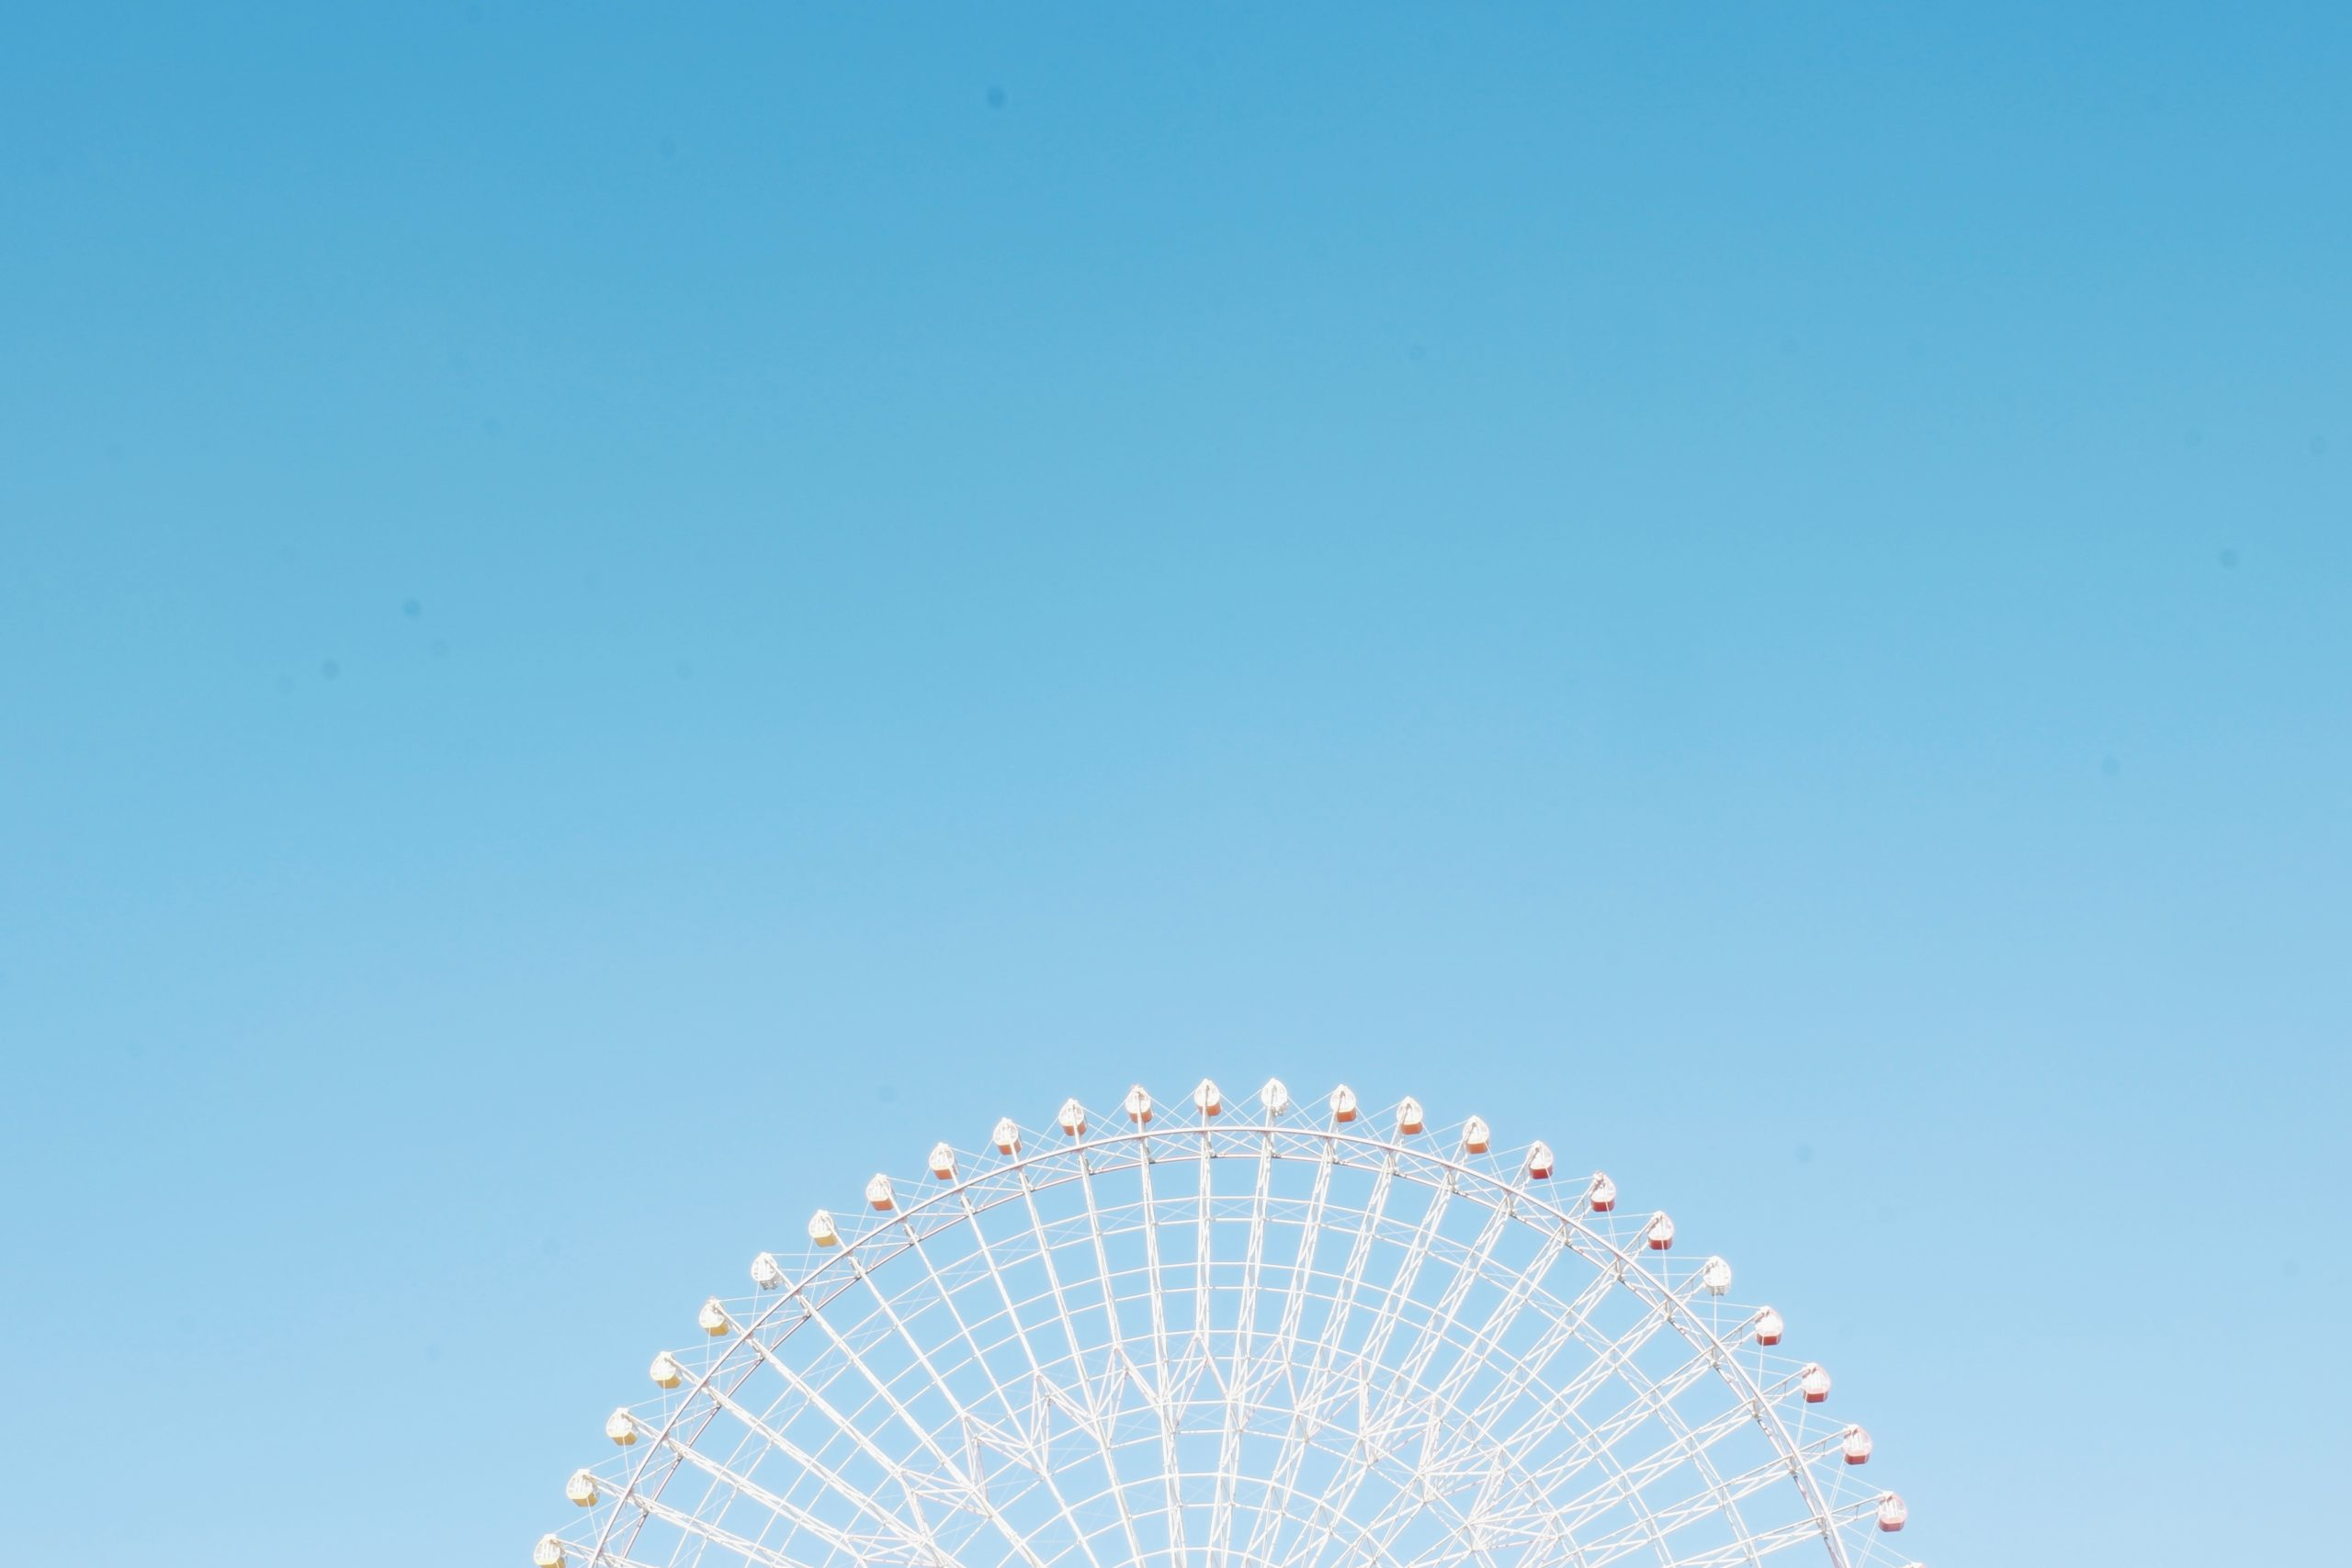 http://Top%20half%20of%20a%20white%20ferris%20wheel%20in%20front%20of%20a%20blue%20sky